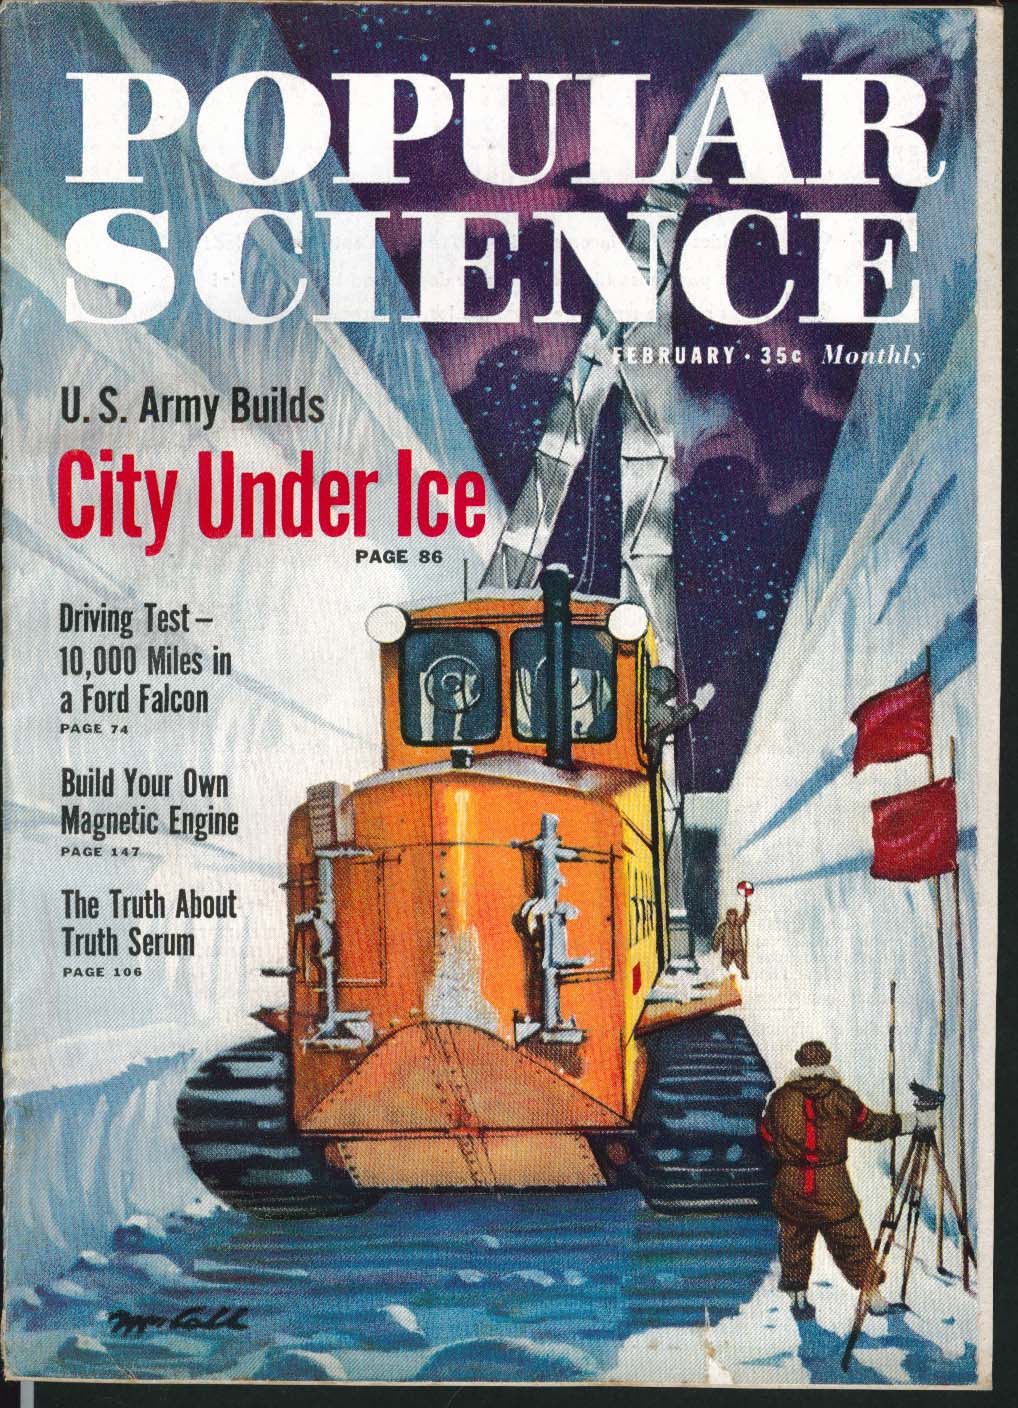 Image for POPULAR SCIENCE City Under Ice Ford Falcon Test Drive Truth Serum ++ 2 1960